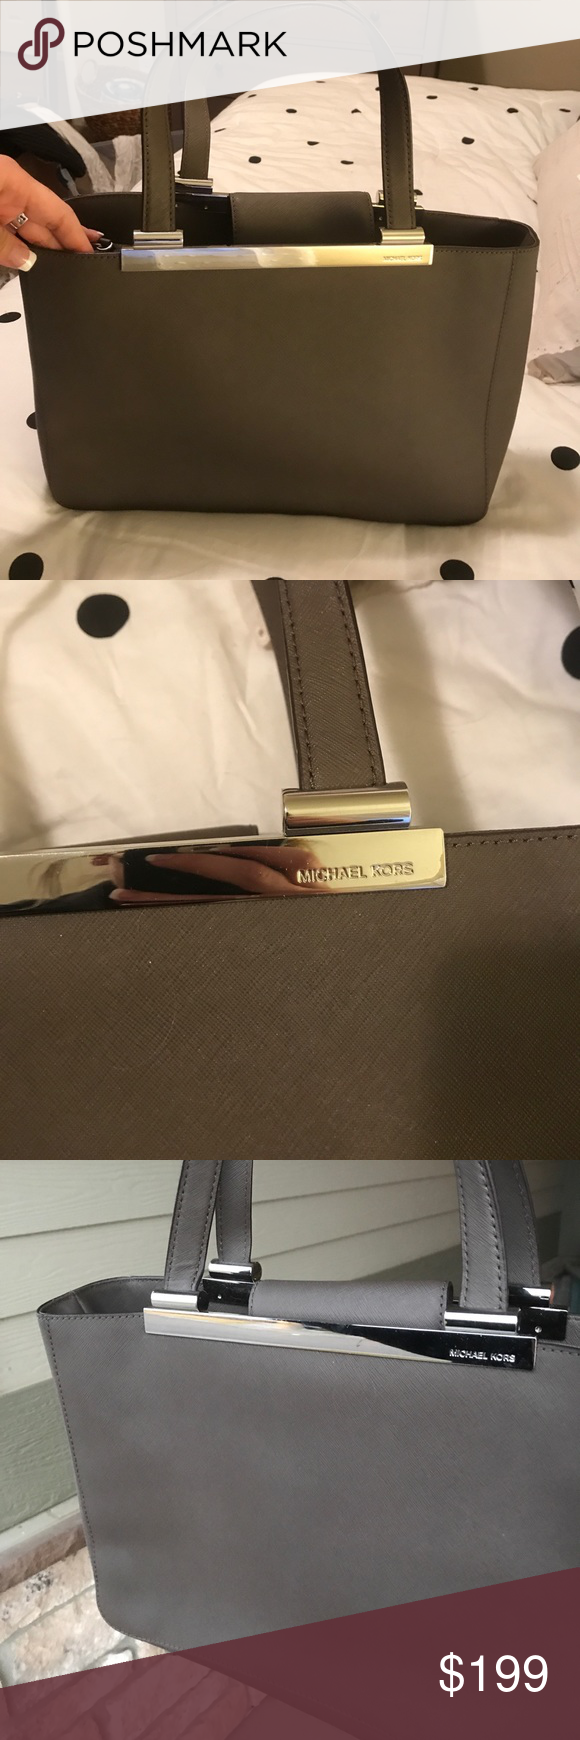 MICHAEL KORS purse😍 Bought this originally for $298. In PERFECT condition. Used MAYBE 3 times. Reason for selling: boyfriend got me another MK purse that's the exact same color. Love this classy color and wonderful for meetings or just your day to day purse. Lots of pockets and has a zipper in the middle. Bags